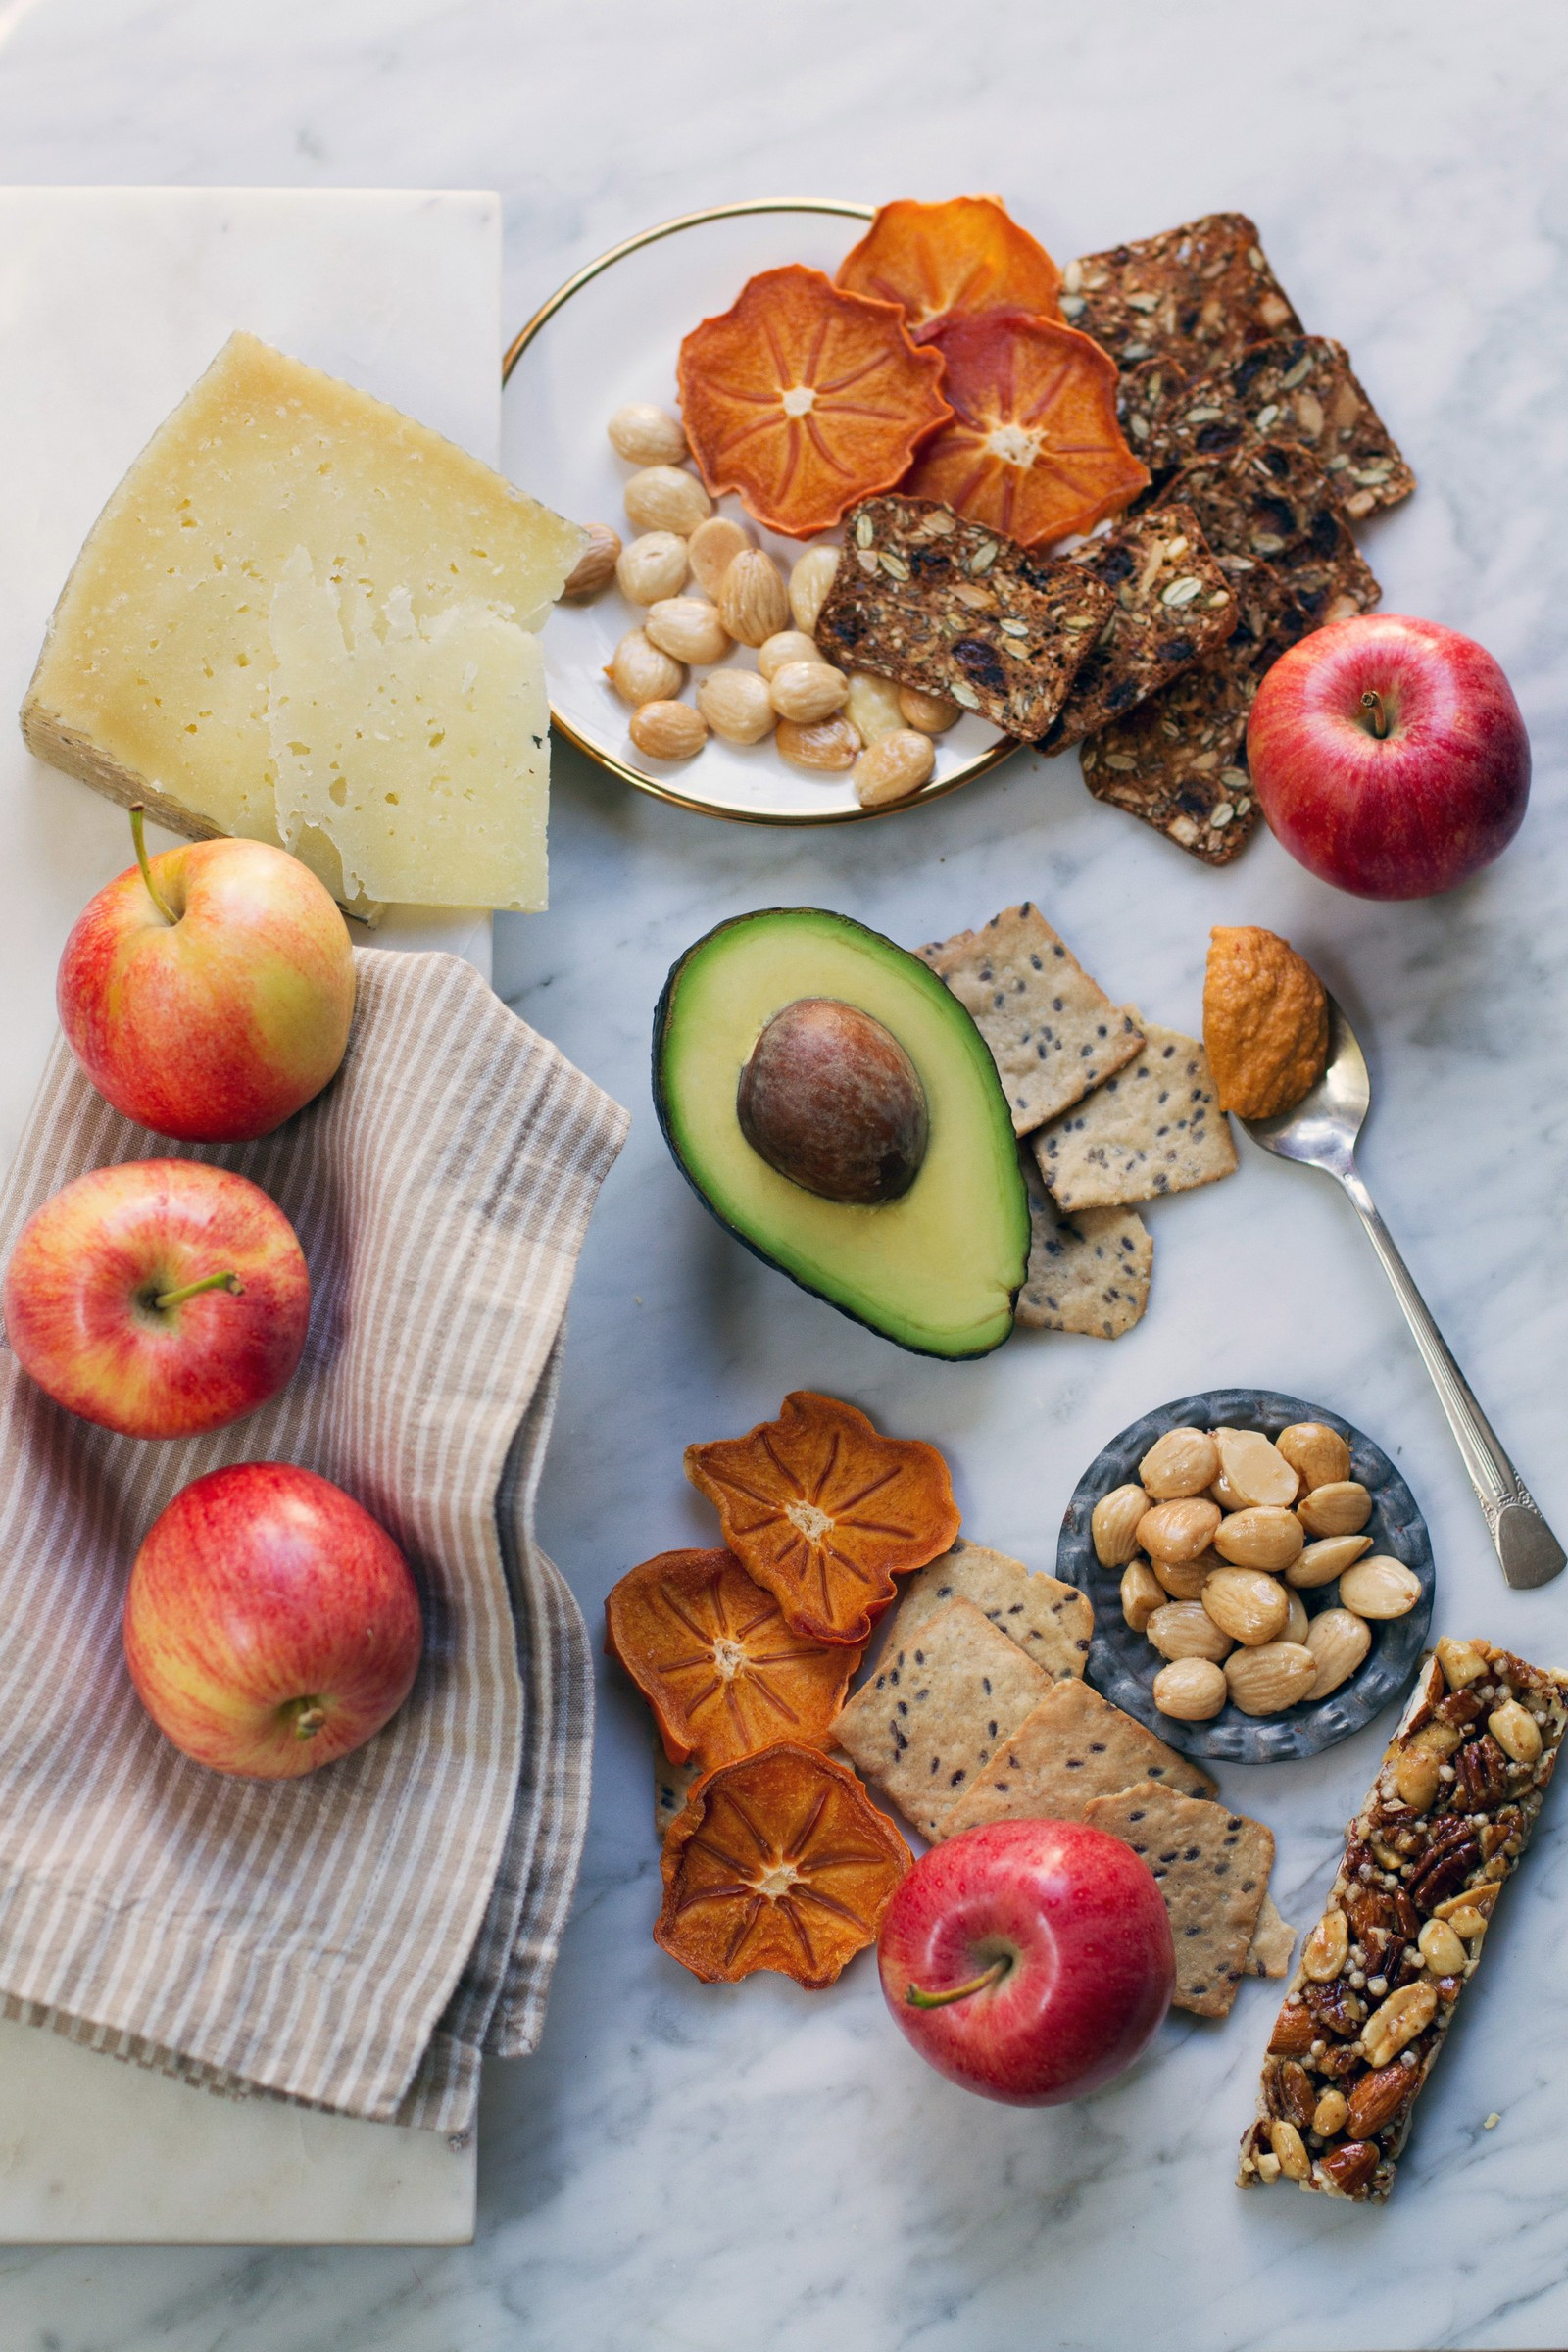 Healthy Snacks For Traveling  Travel Snacks That Taste Better Than Airplane Food